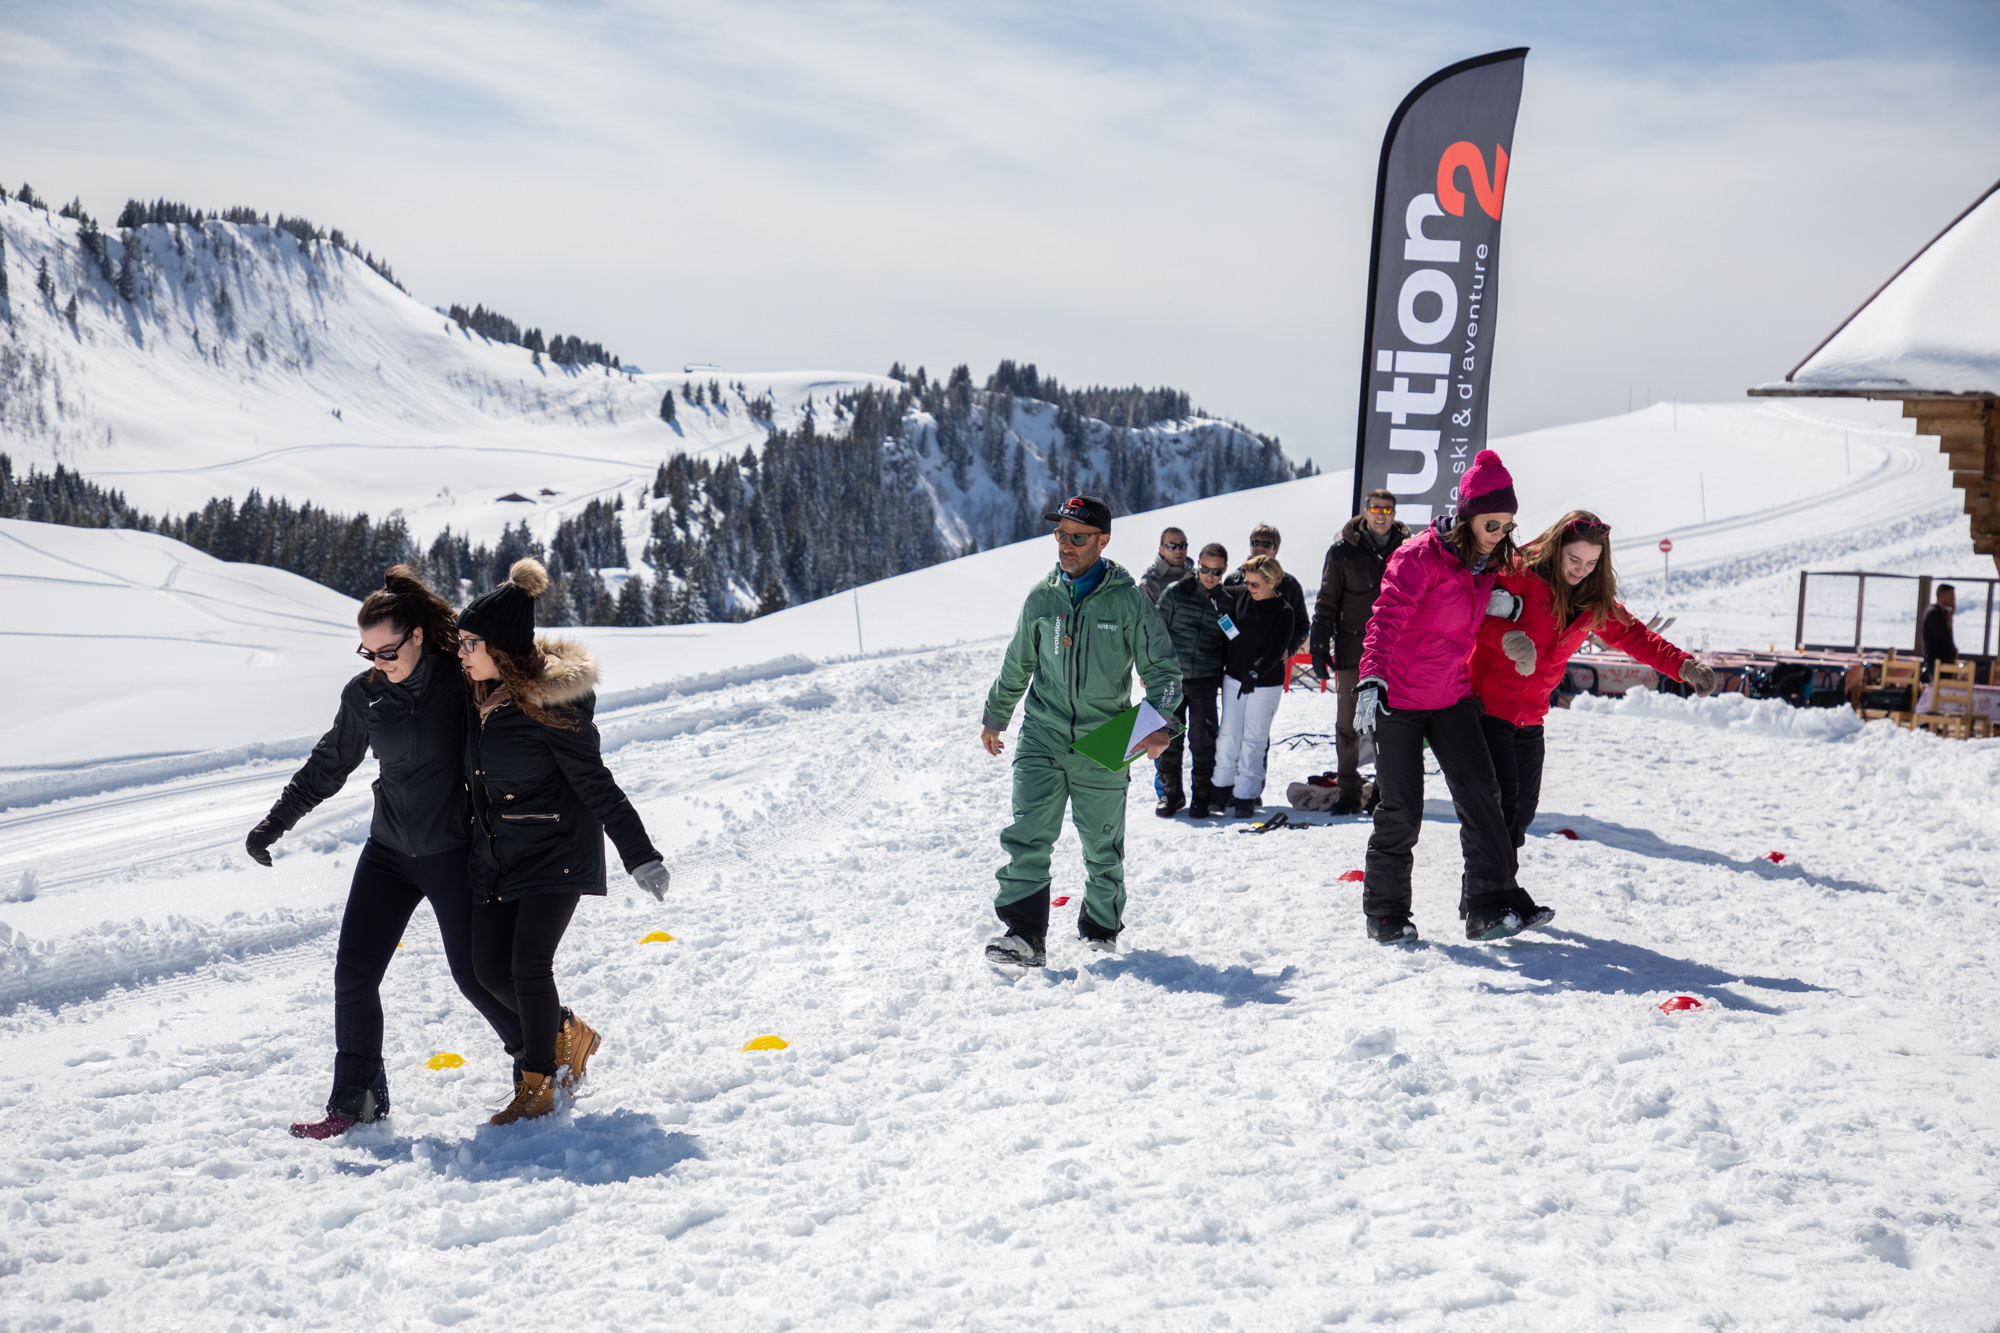 Break_The_Ice_LaClusaz_2019_web-6804.jpg